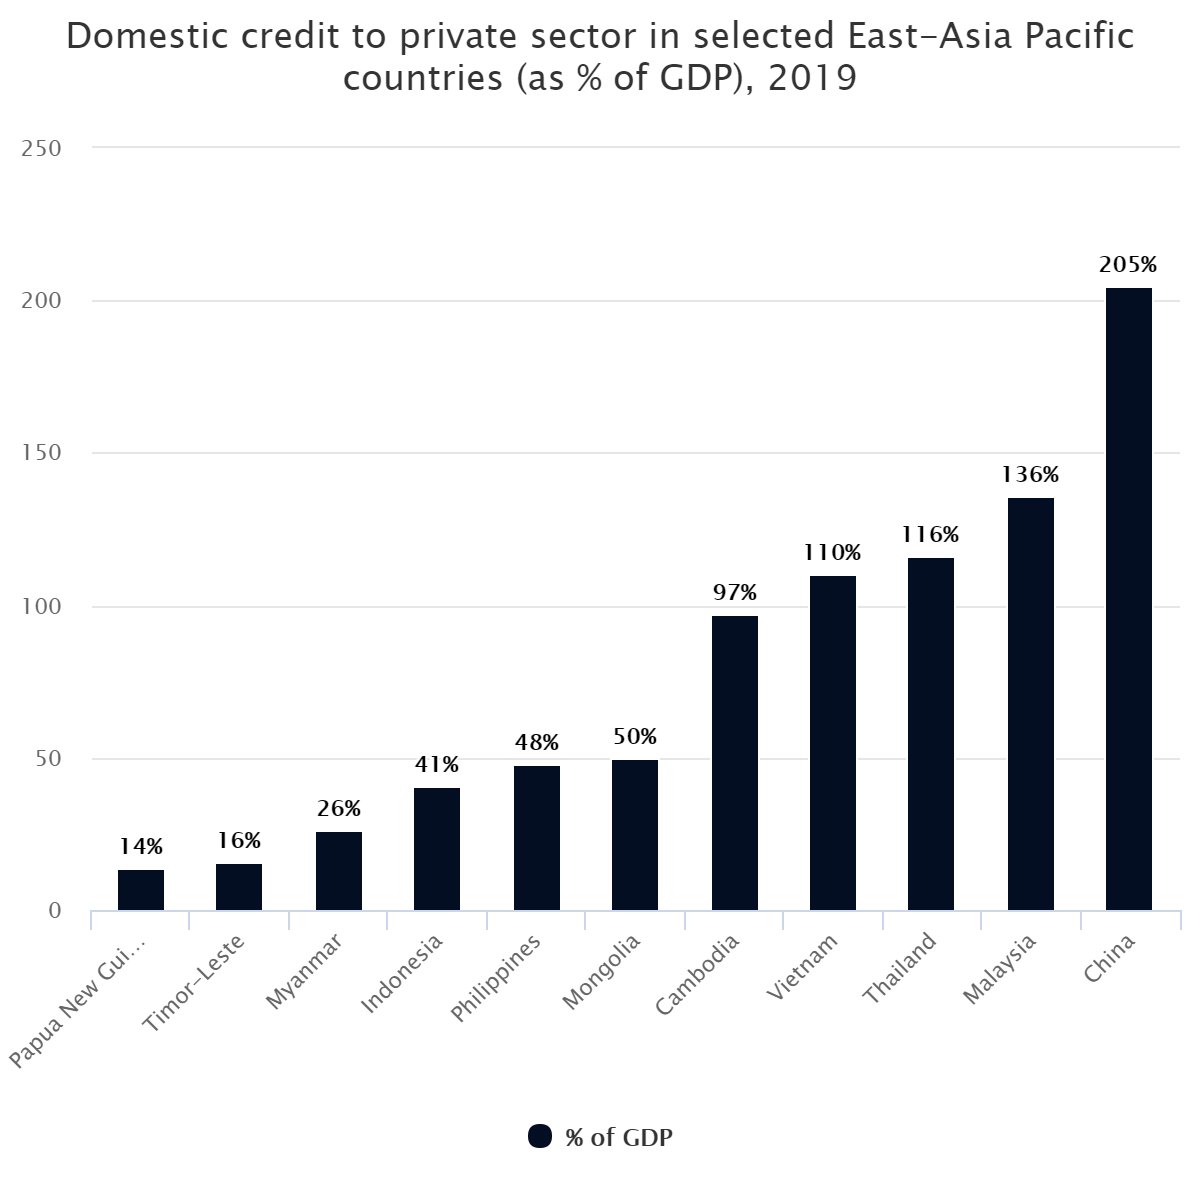 Domestic credit to private sector in selected East-Asia Pacific countries (as % of GDP), 2019